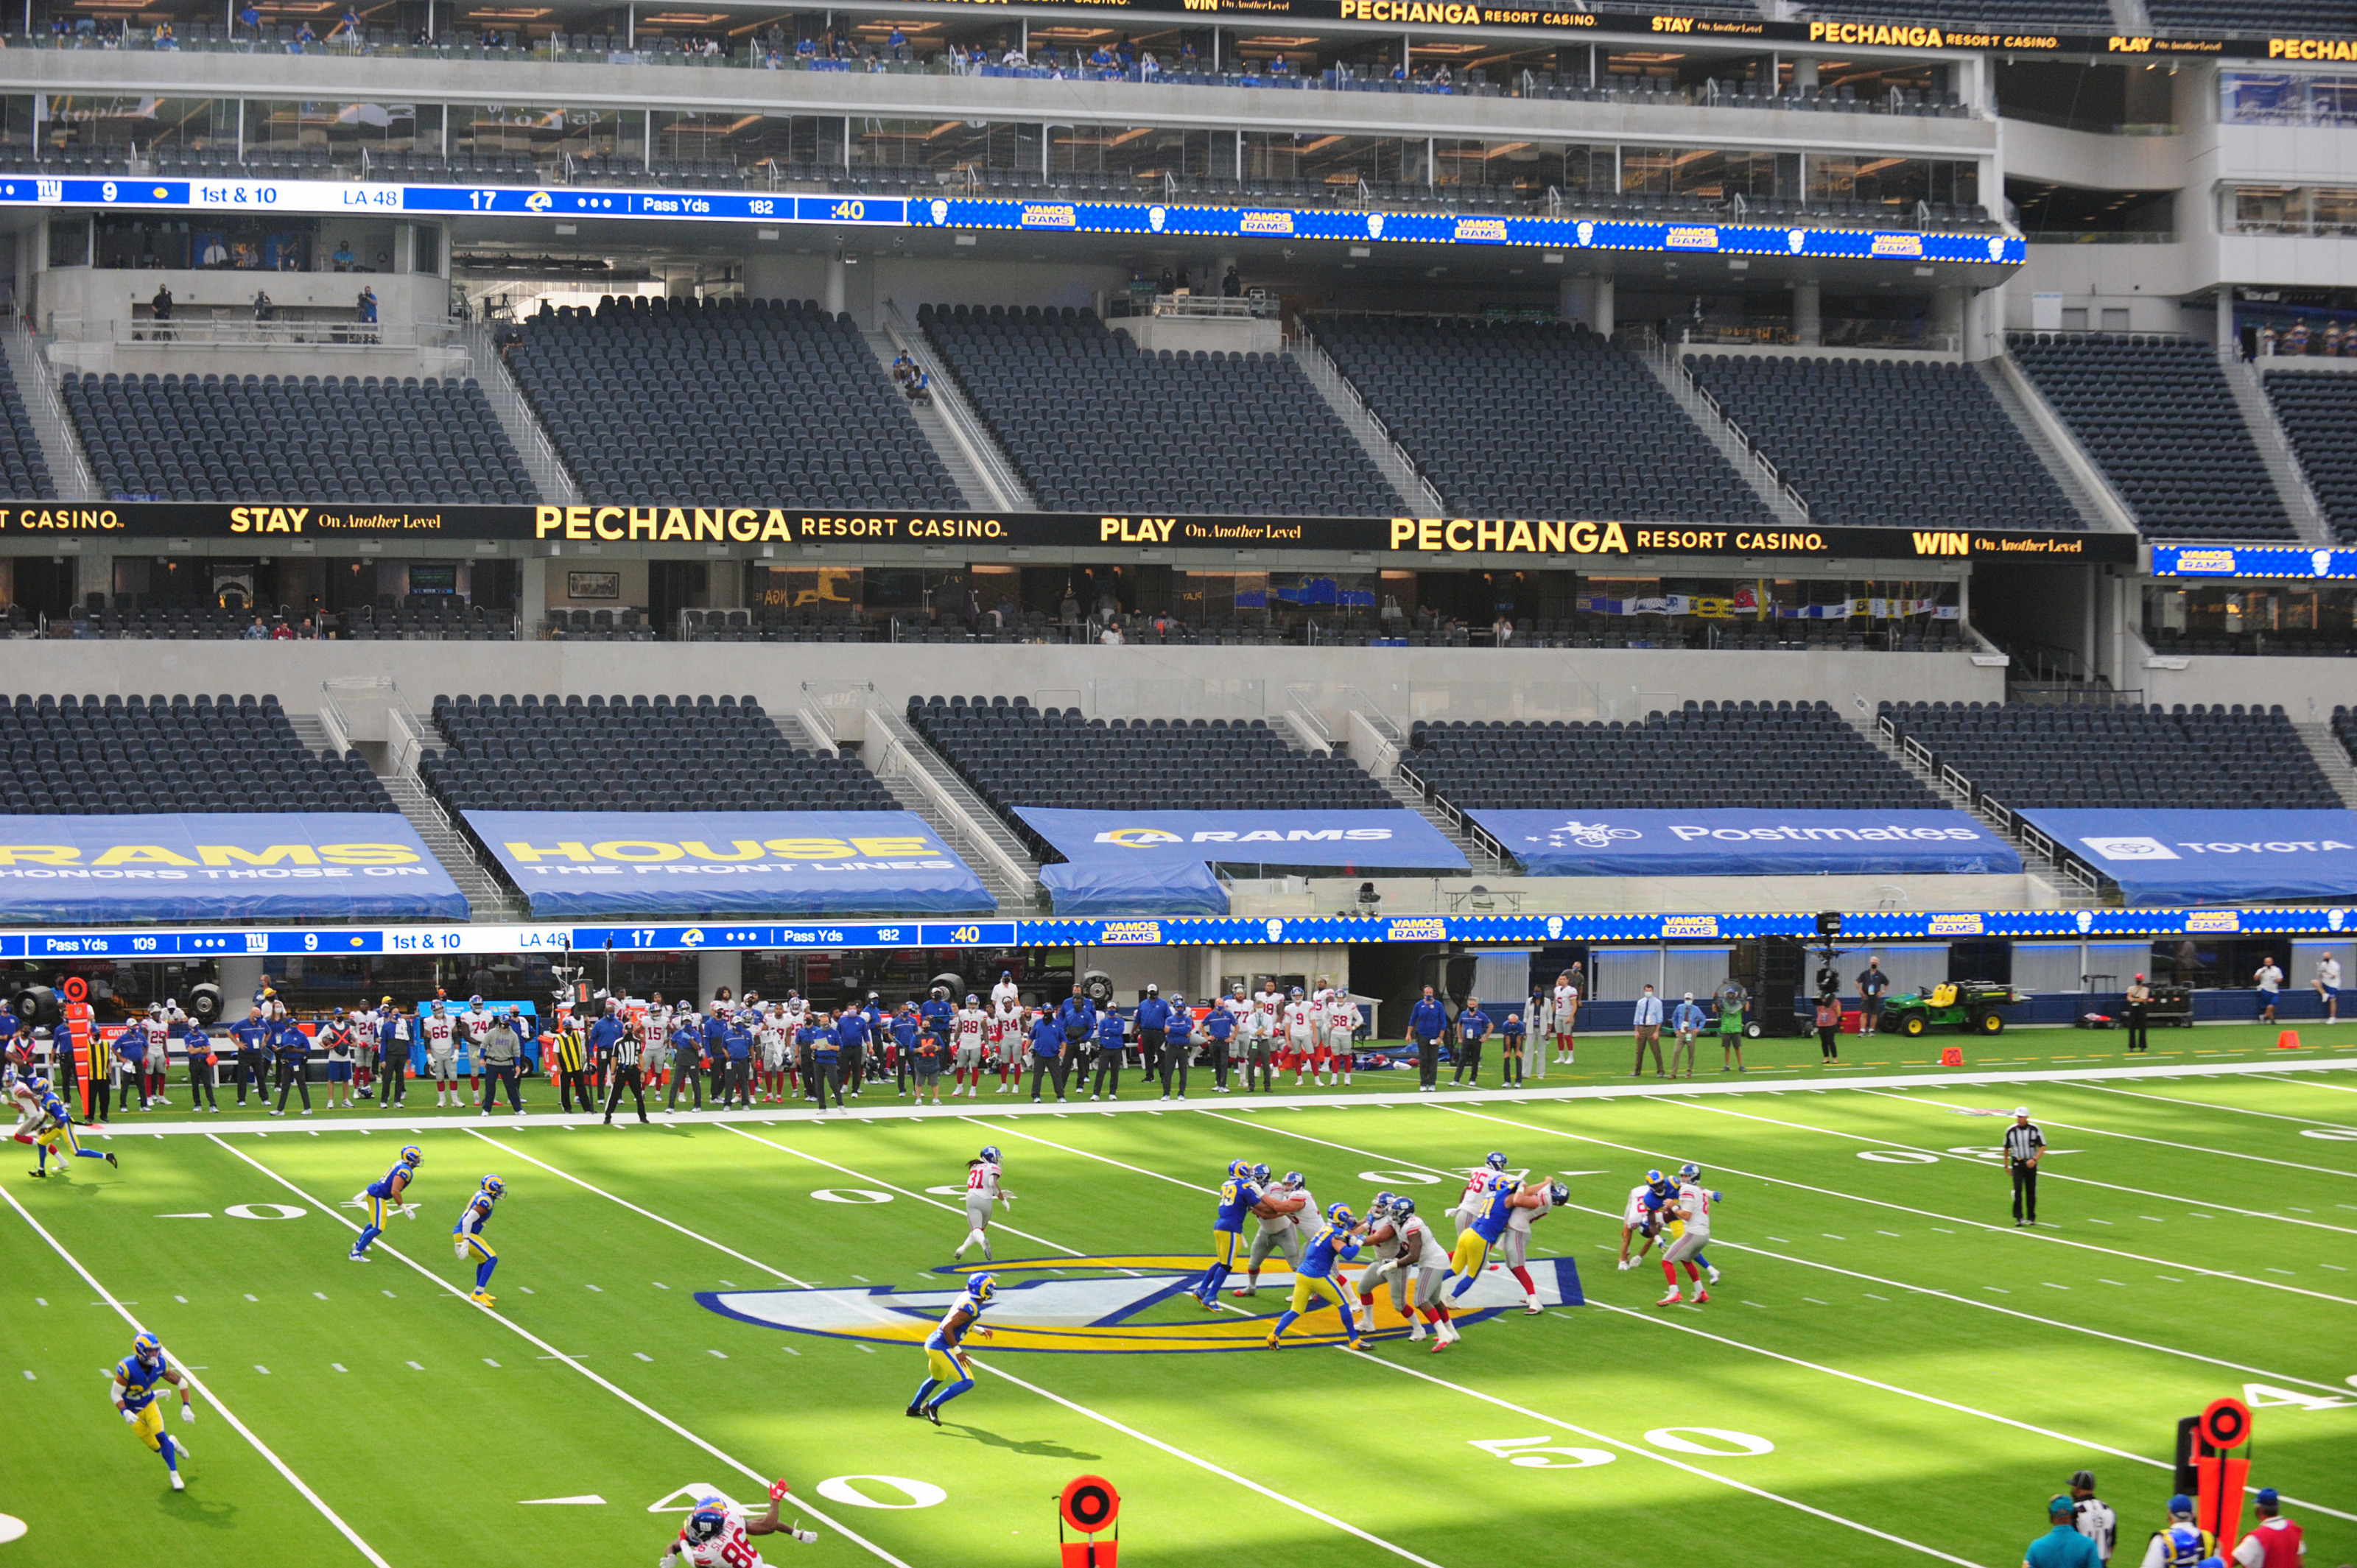 When Will The La Rams Let Fans Into Sofi Stadium